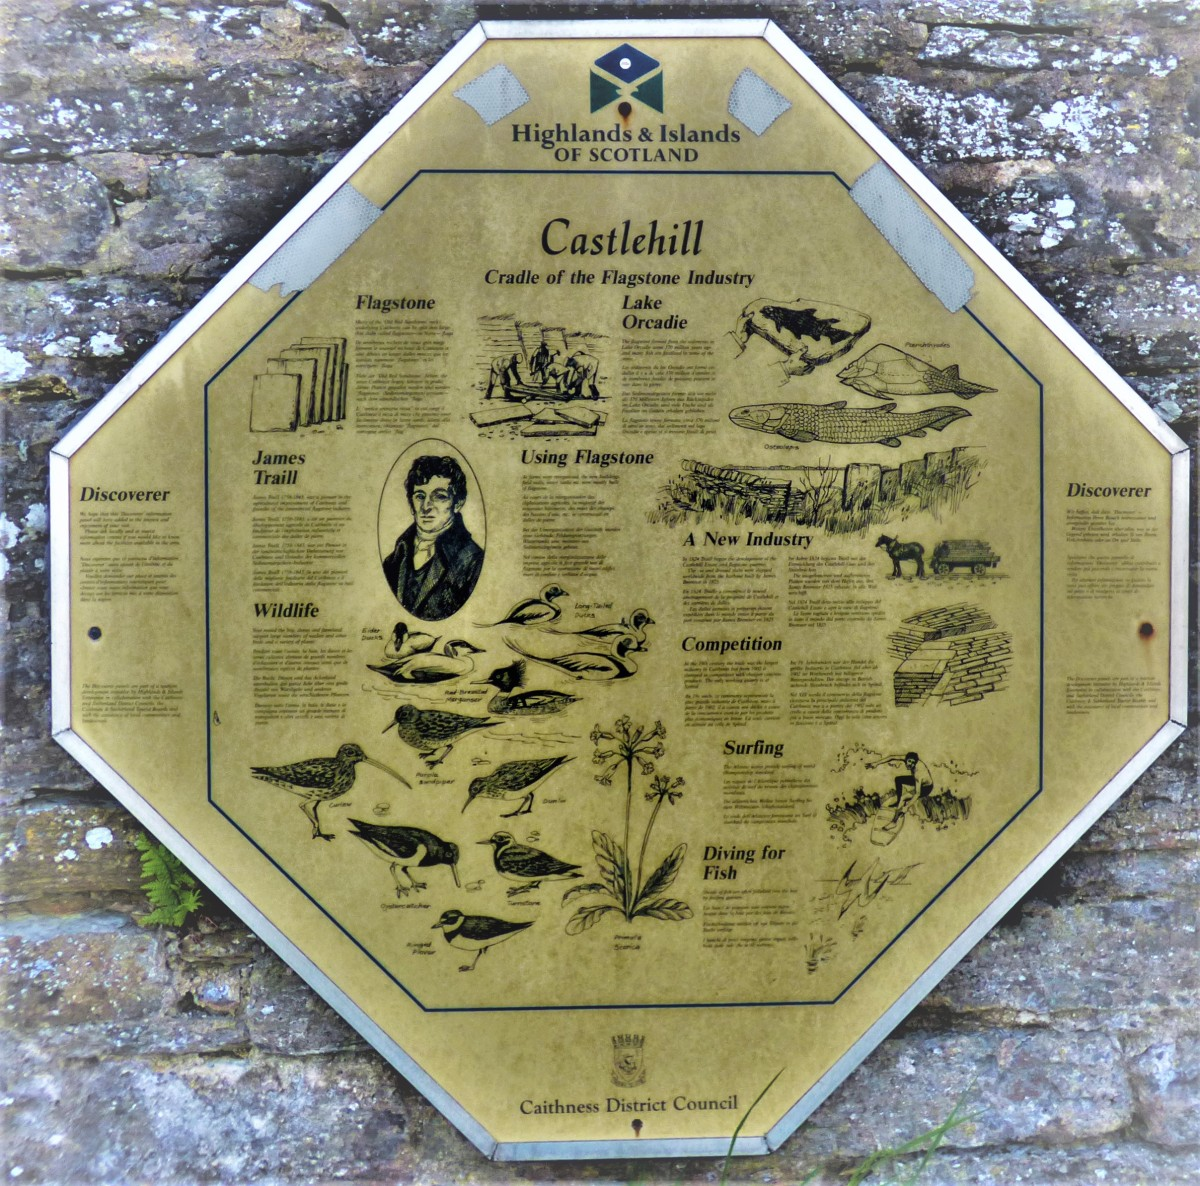 Scotland 2021: Dunnet Bay and a MealOut